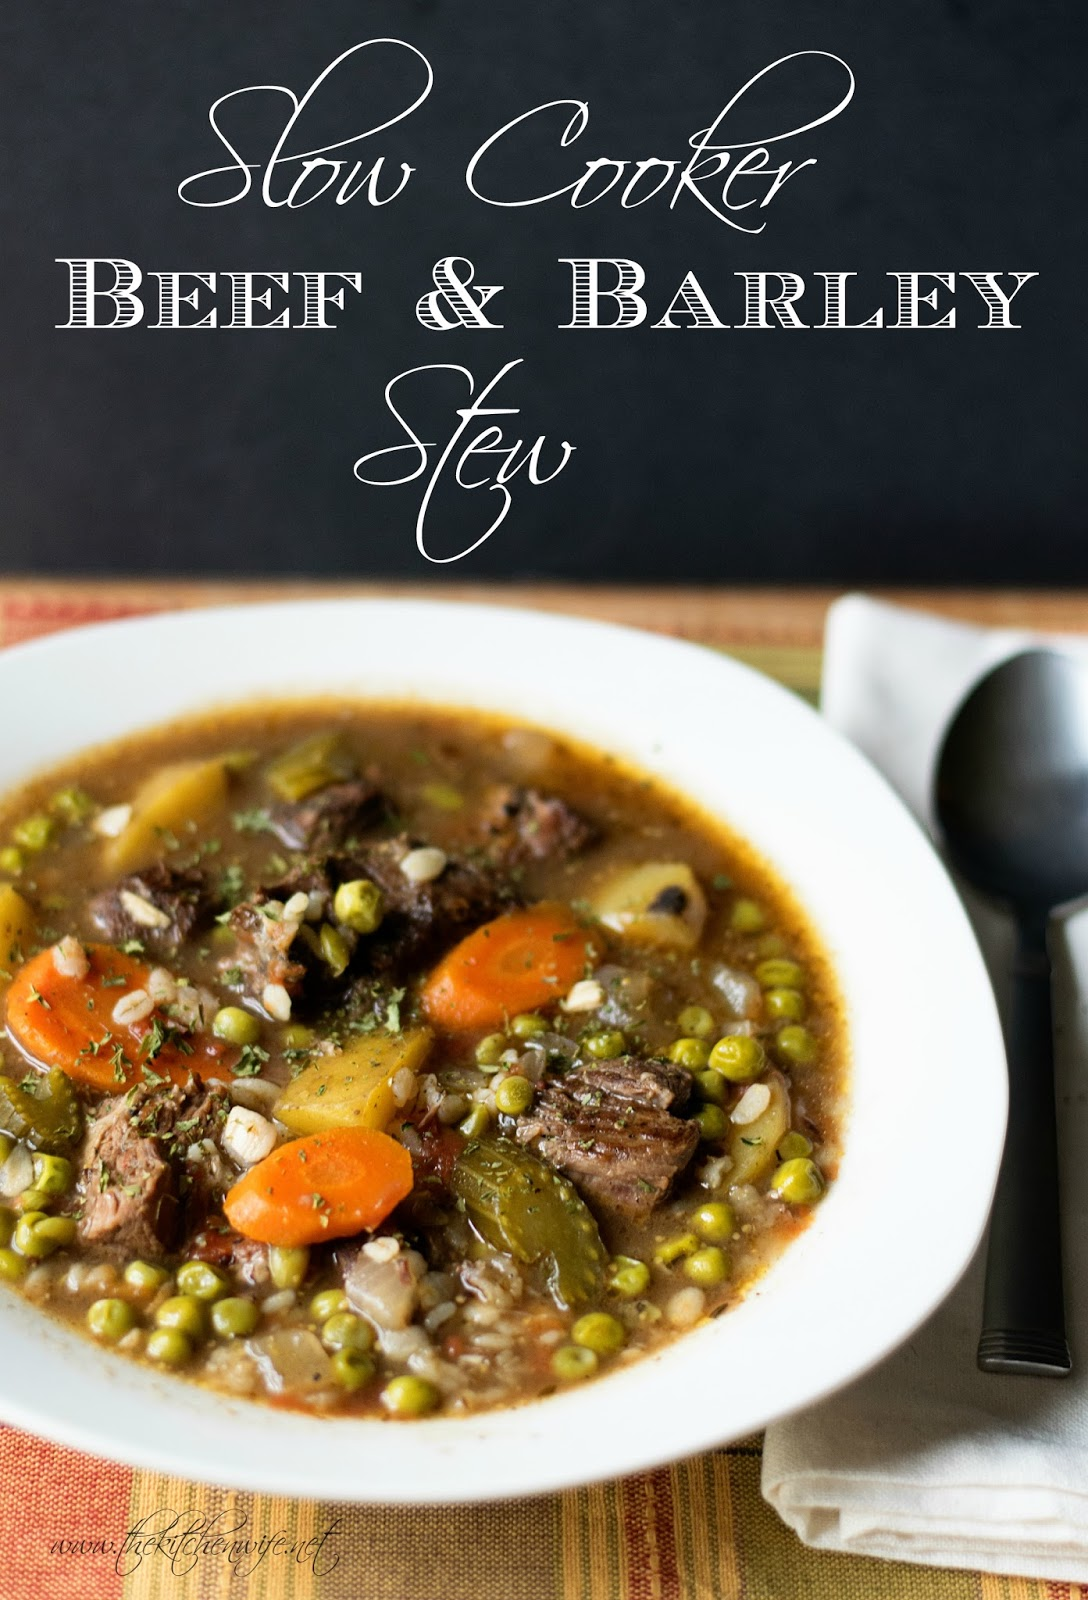 Perfect Crockpot Beef And Barley Stew The Kitchen Wife